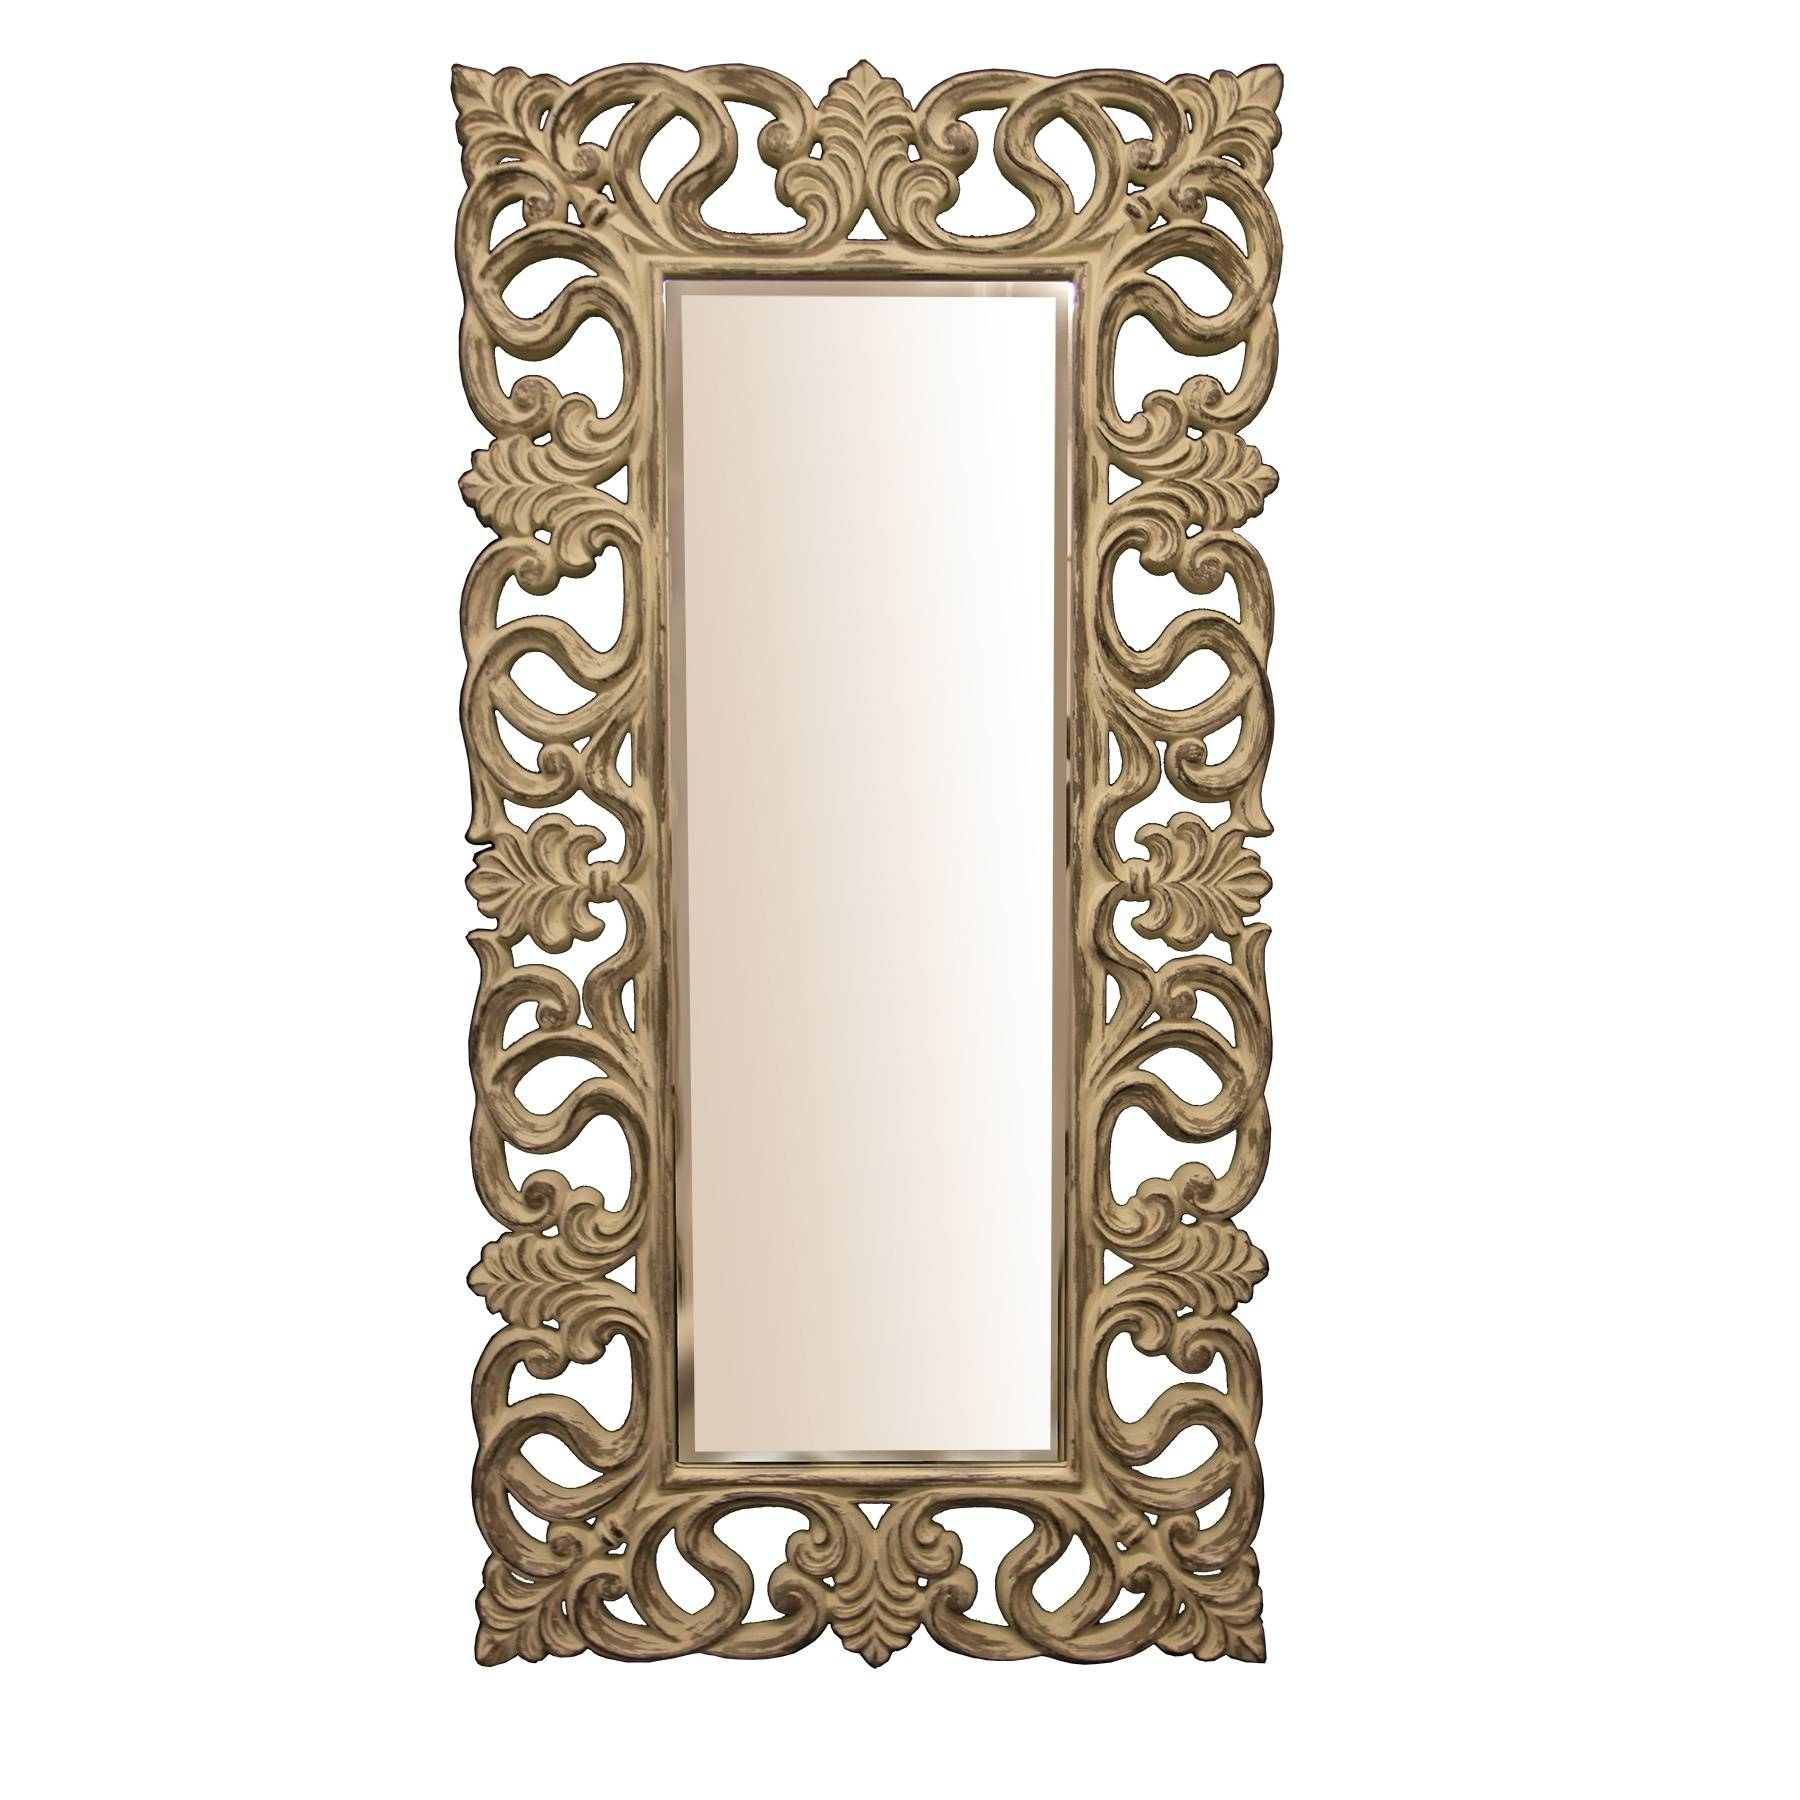 Full Length Mirror, Shabby Chic | Swanky Interiors with regard to Ornate Full Length Mirrors (Image 12 of 25)